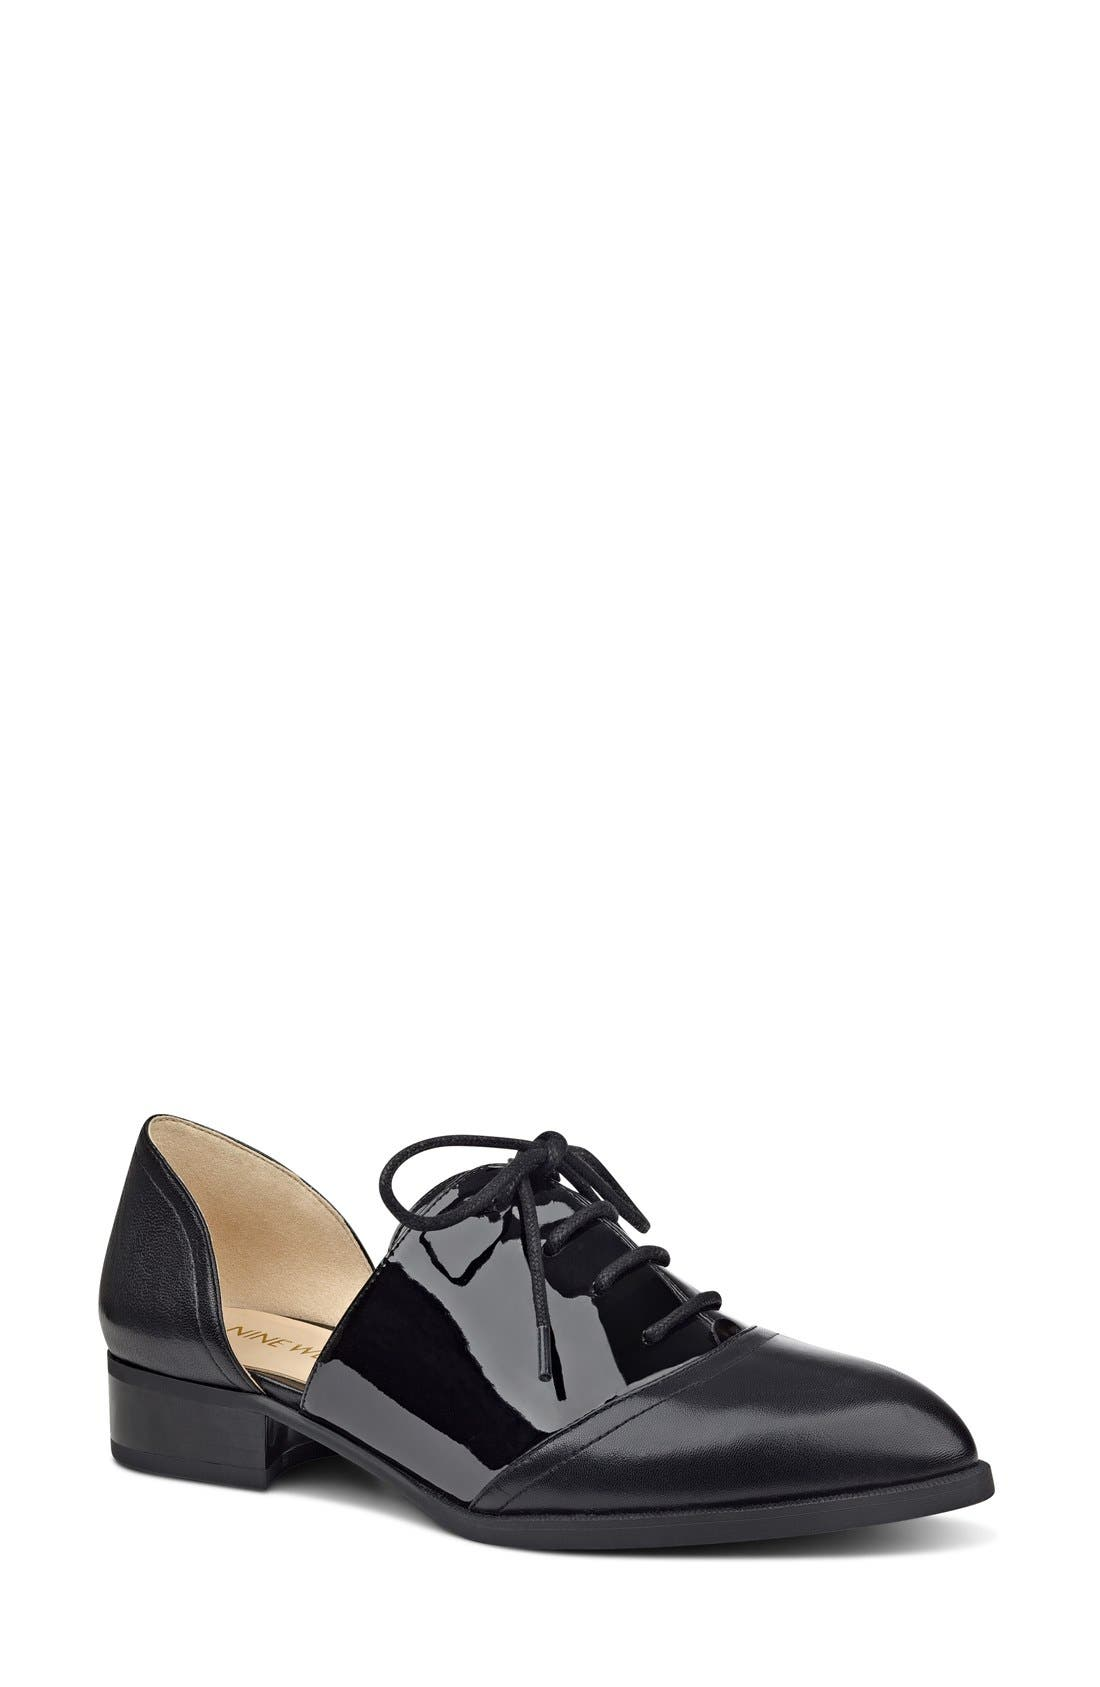 Alternate Image 1 Selected - Nine West 'Nevie' d'Orsay Oxford (Women)